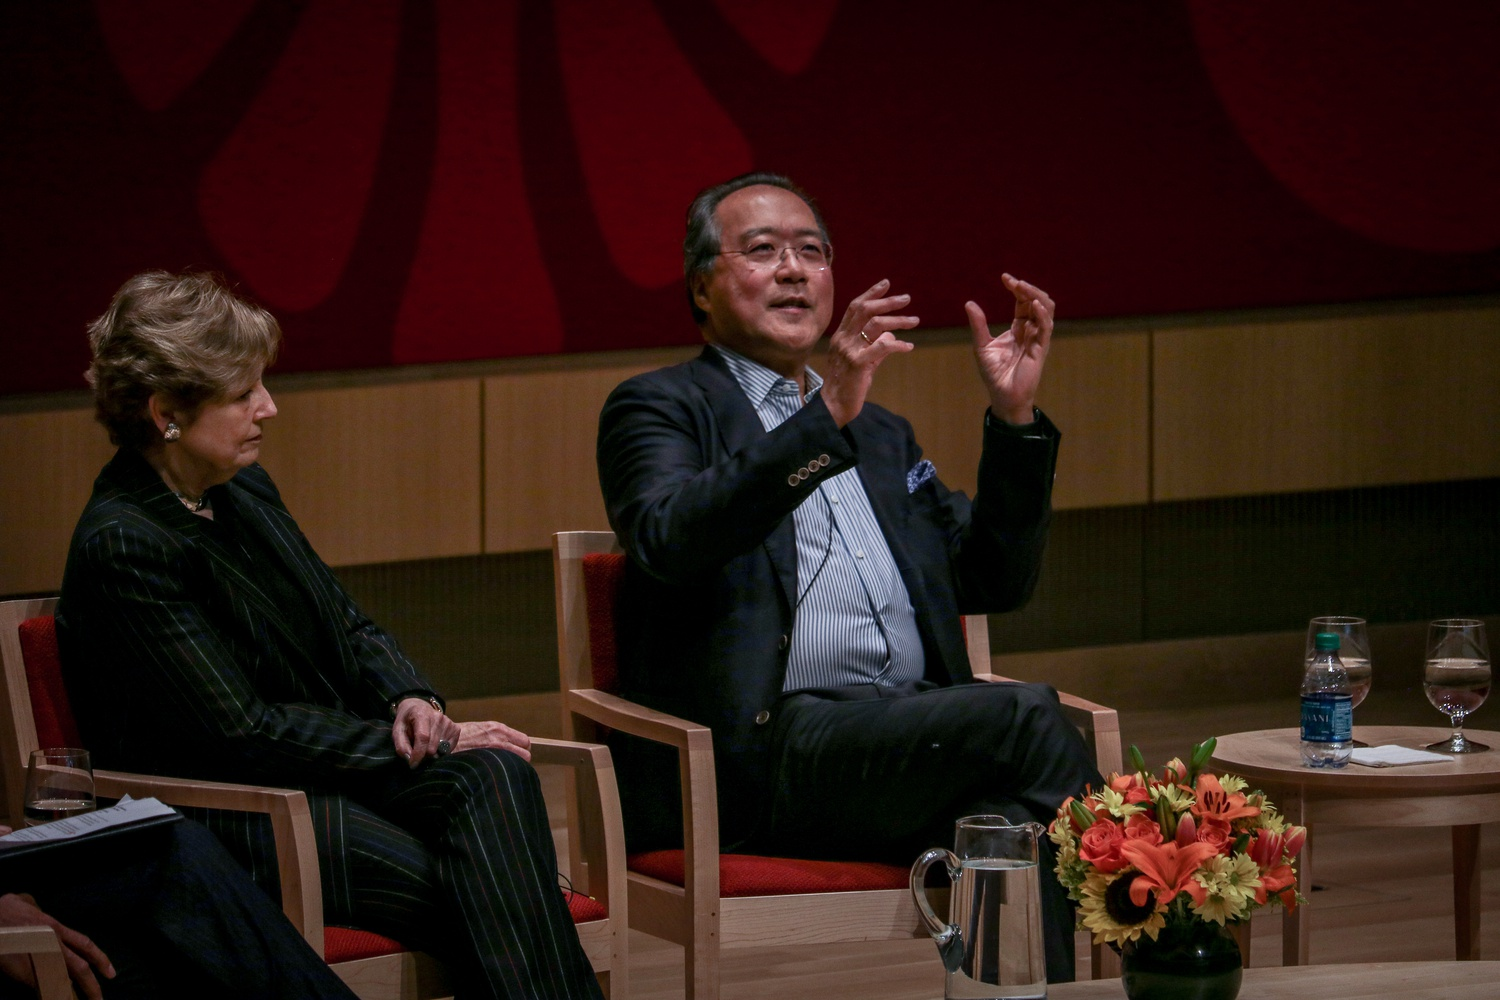 World-renowned cellist Yo-Yo Ma '76 and New York Philharmonic Orchestra President Deborah Borda discussed the role of art in driving social justice on Wednesday evening. At the talk, Ma promised that he will be devoting the rest of his life to social impact.